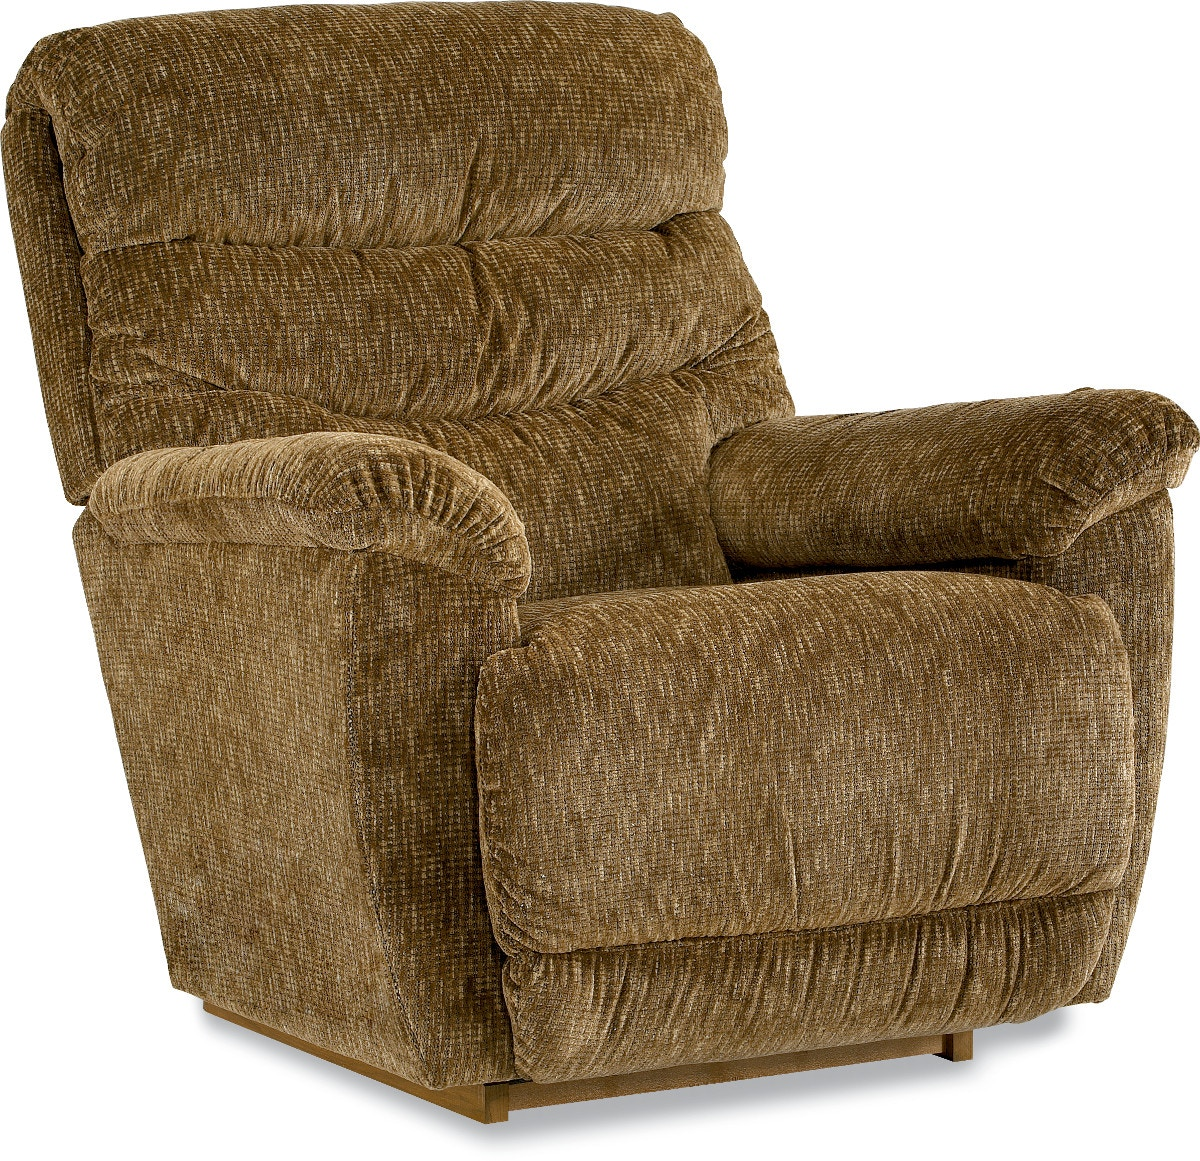 La-Z-Boy RECLINA-ROCKER® Recliner 010502  sc 1 st  Dewey Furniture & La-Z-Boy Living Room RECLINA-ROCKER® Recliner 010502 - Dewey ... islam-shia.org